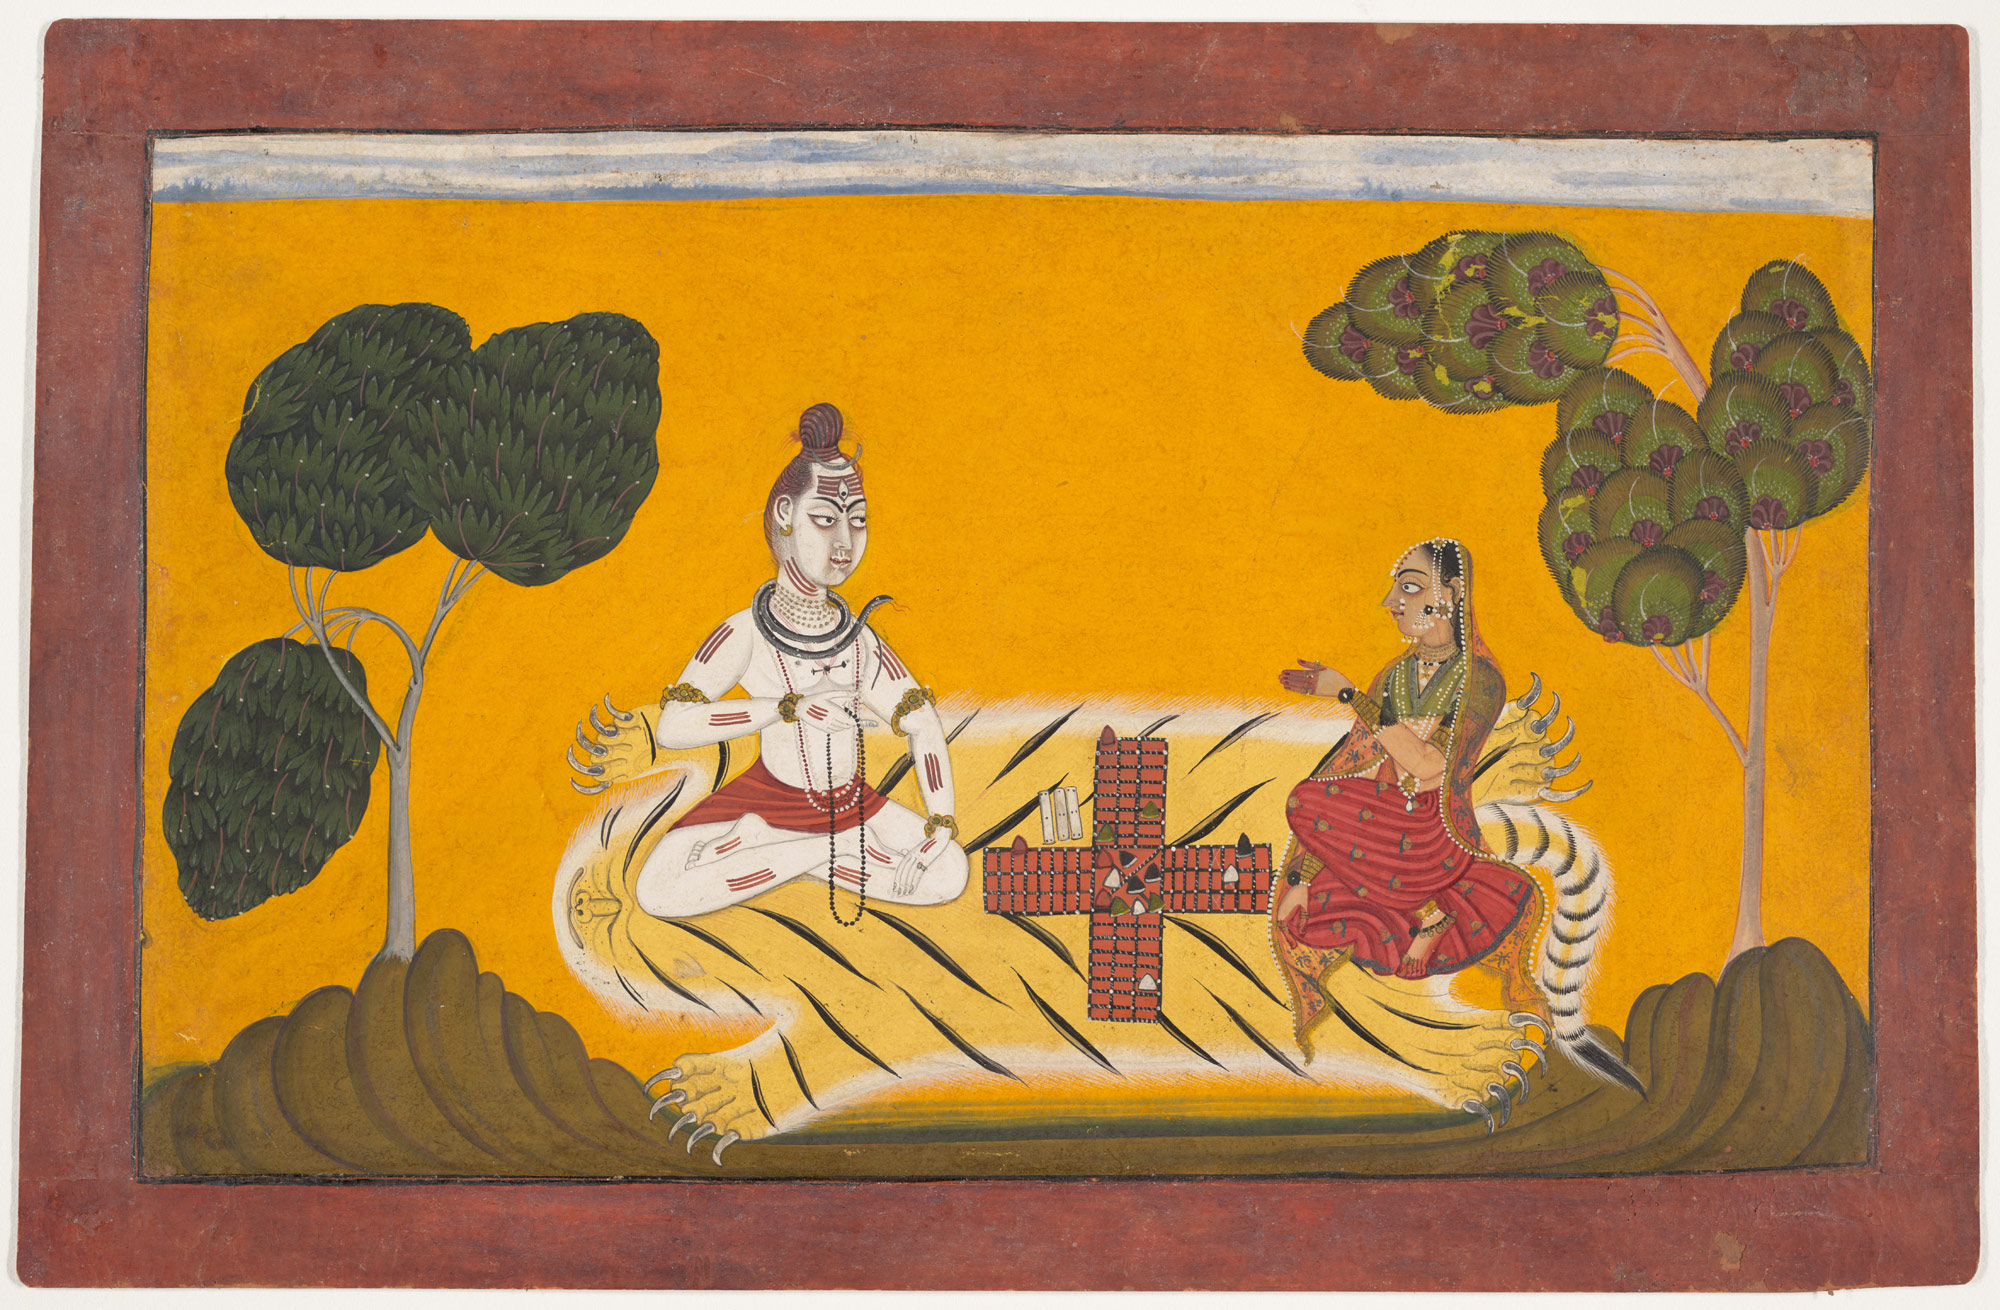 Shiva and Parvati Playing Chaupar: Folio from a Rasamanjari Series